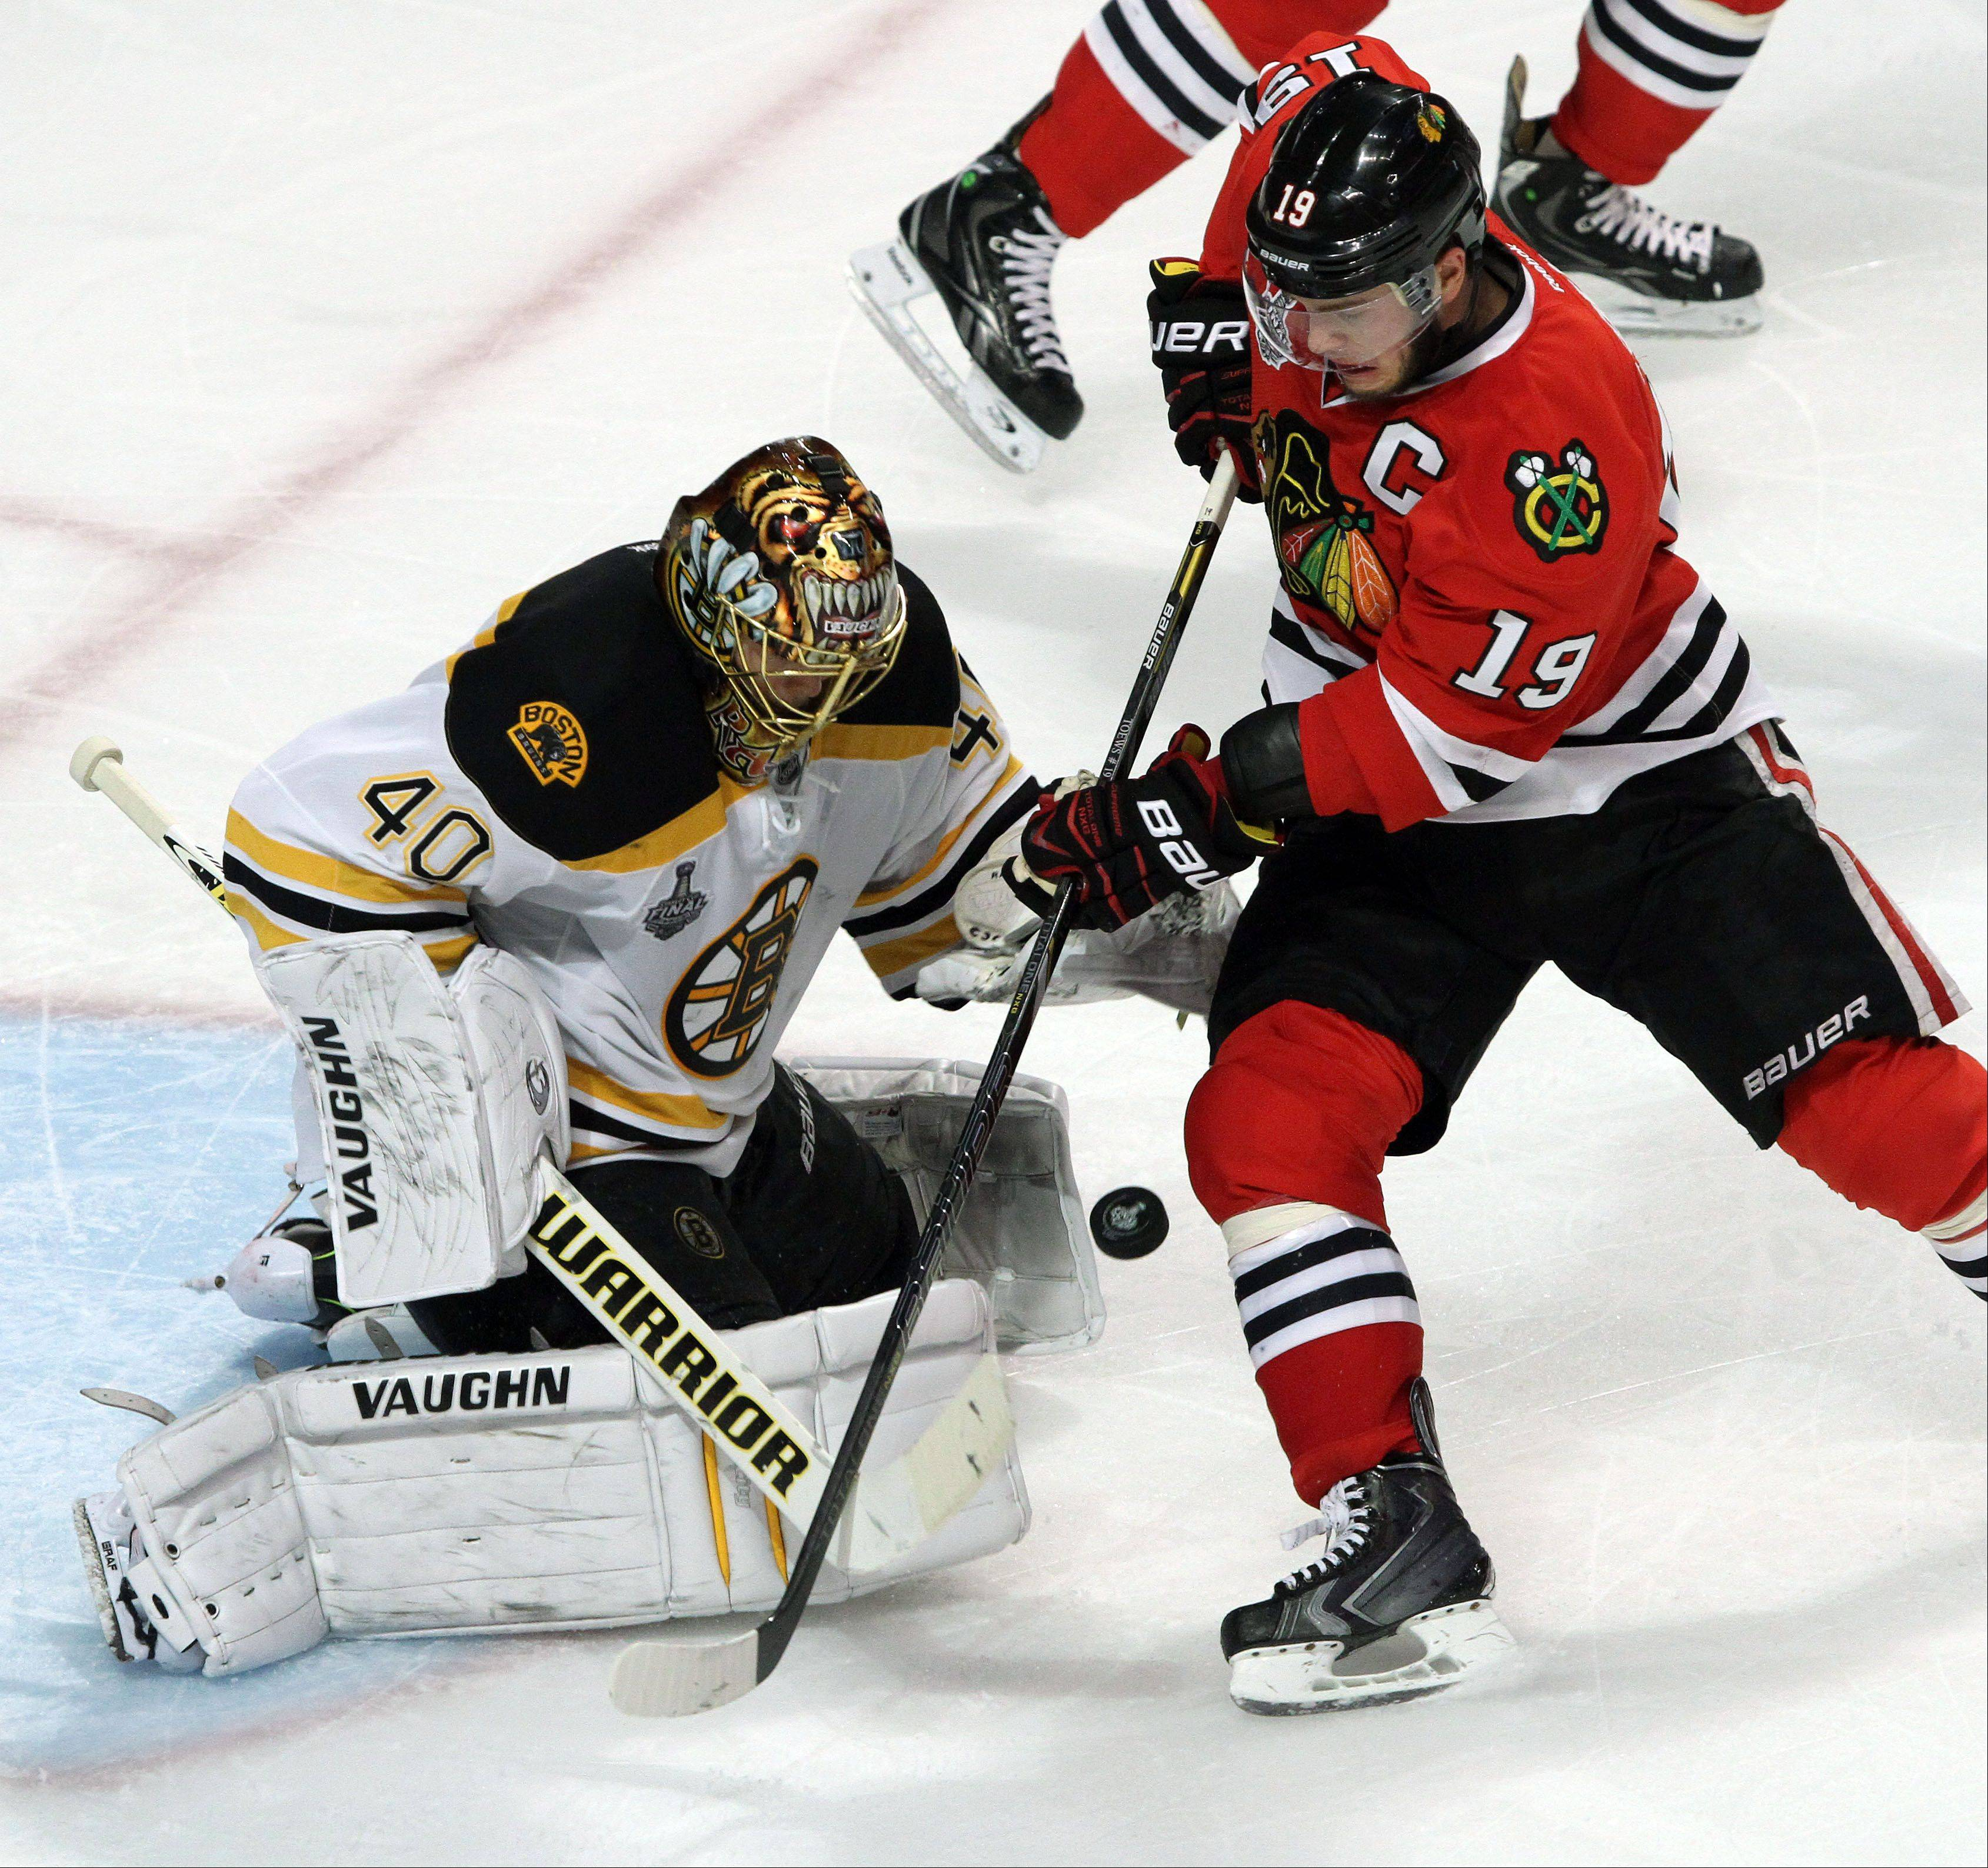 Blackhawks center Jonathan Toews shoots on Bruins goalie Tuukka Rask during Game 2 of the Stanley Cup Final at the United Center on Saturday.